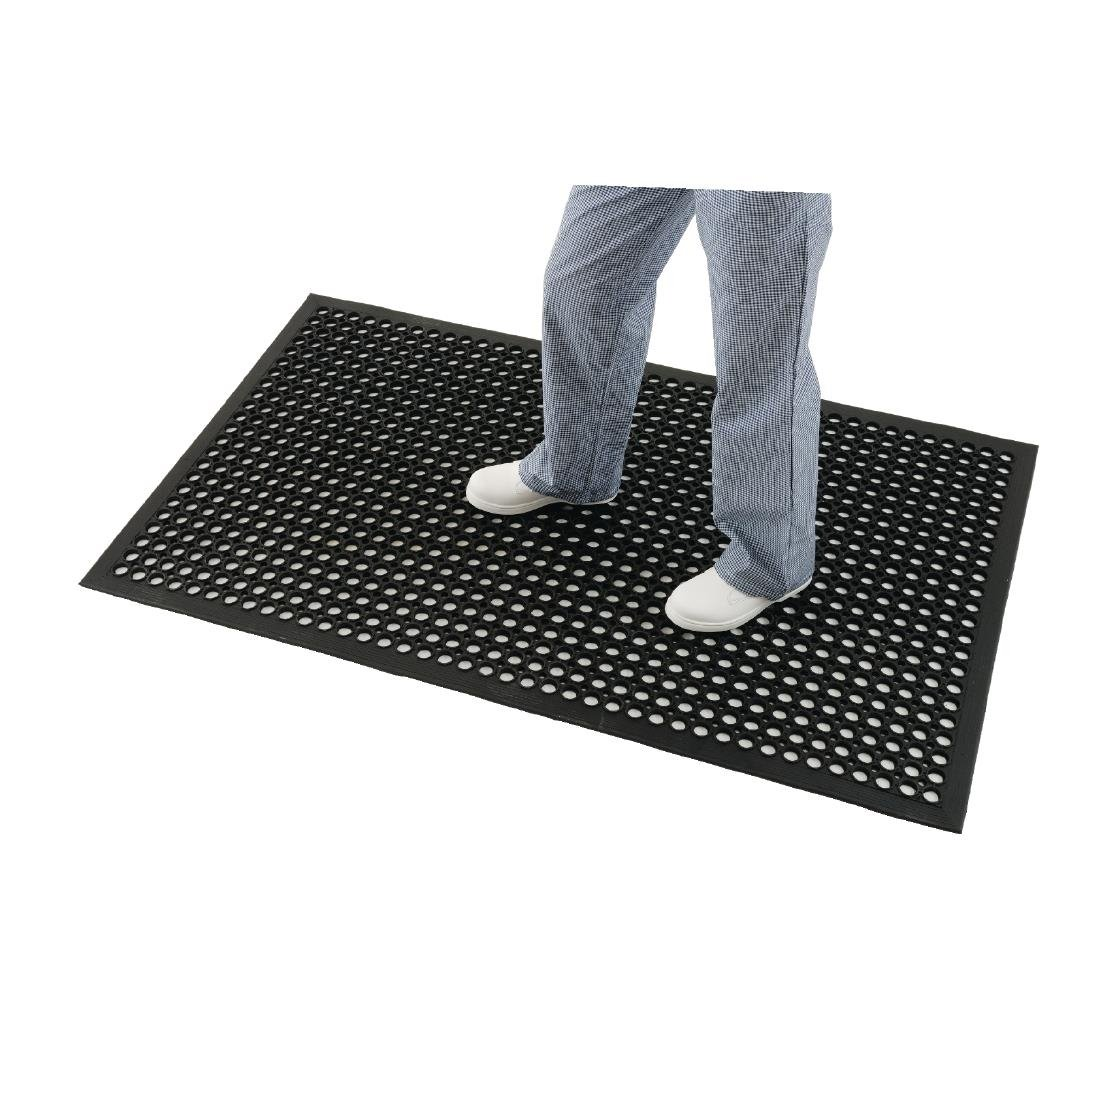 image mat fatigue large anti product stand monoprice mats sit com